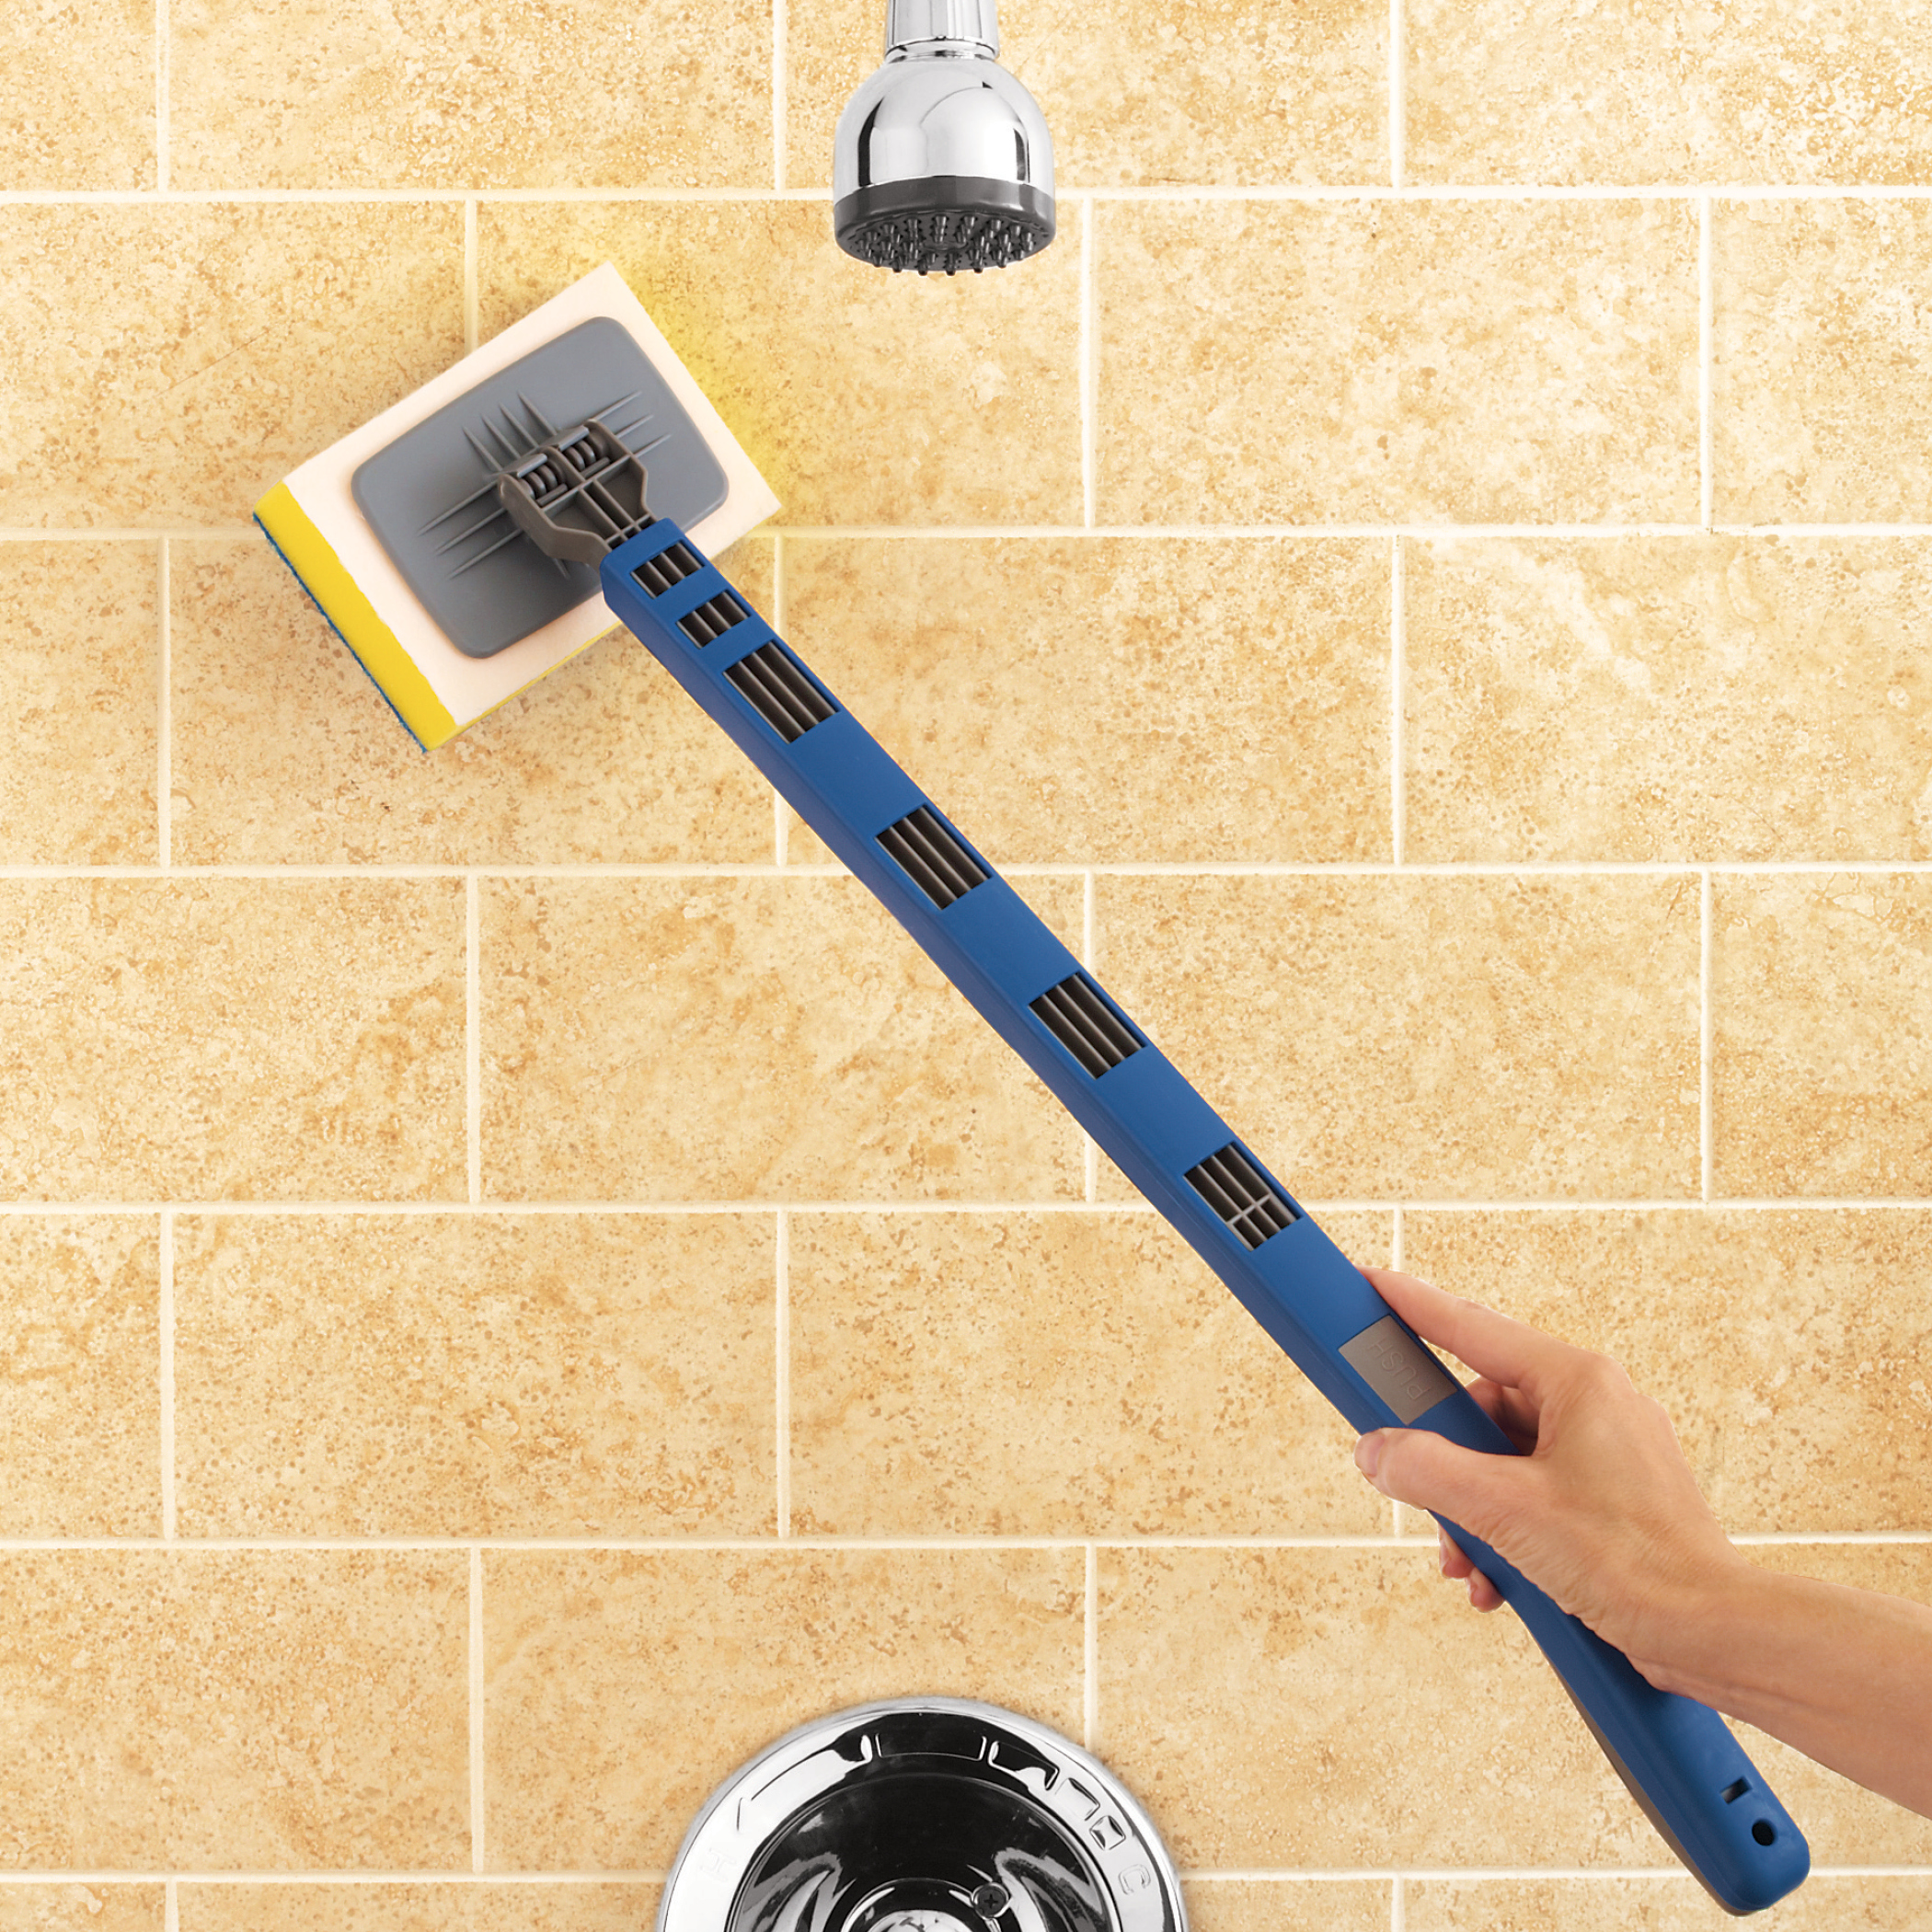 shower tub tile scrubber brush with extendable handle and swivel head for hard to reach places cleaning supplies for bathroom blue walmart com